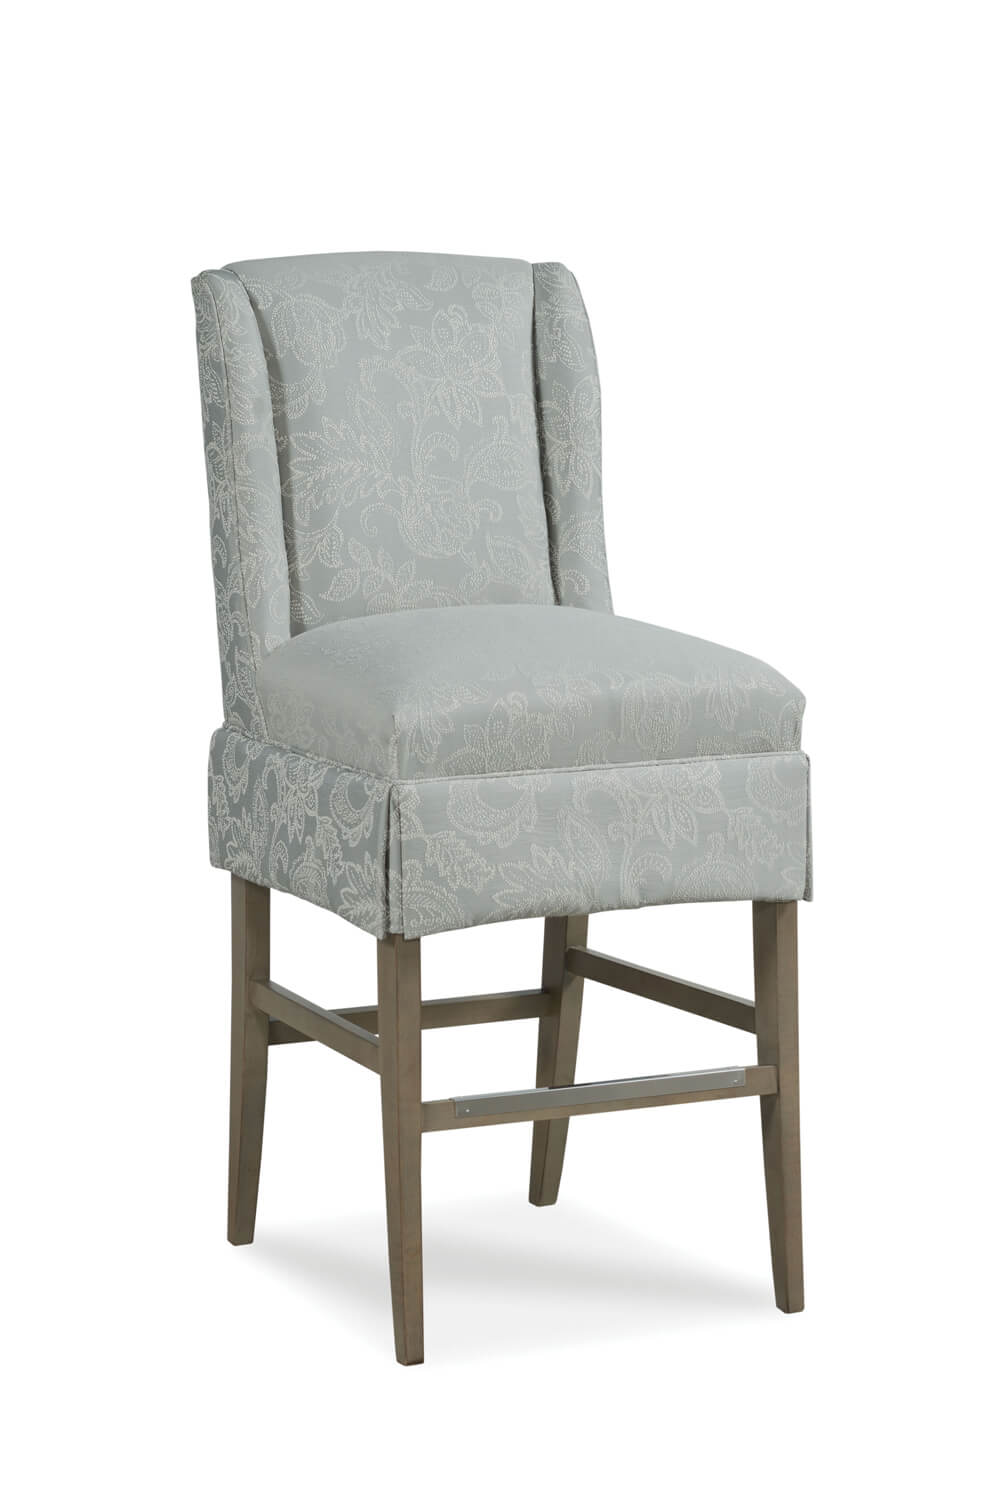 Fairfield Chair's Reed Upholstered Bar Stool with Backrest